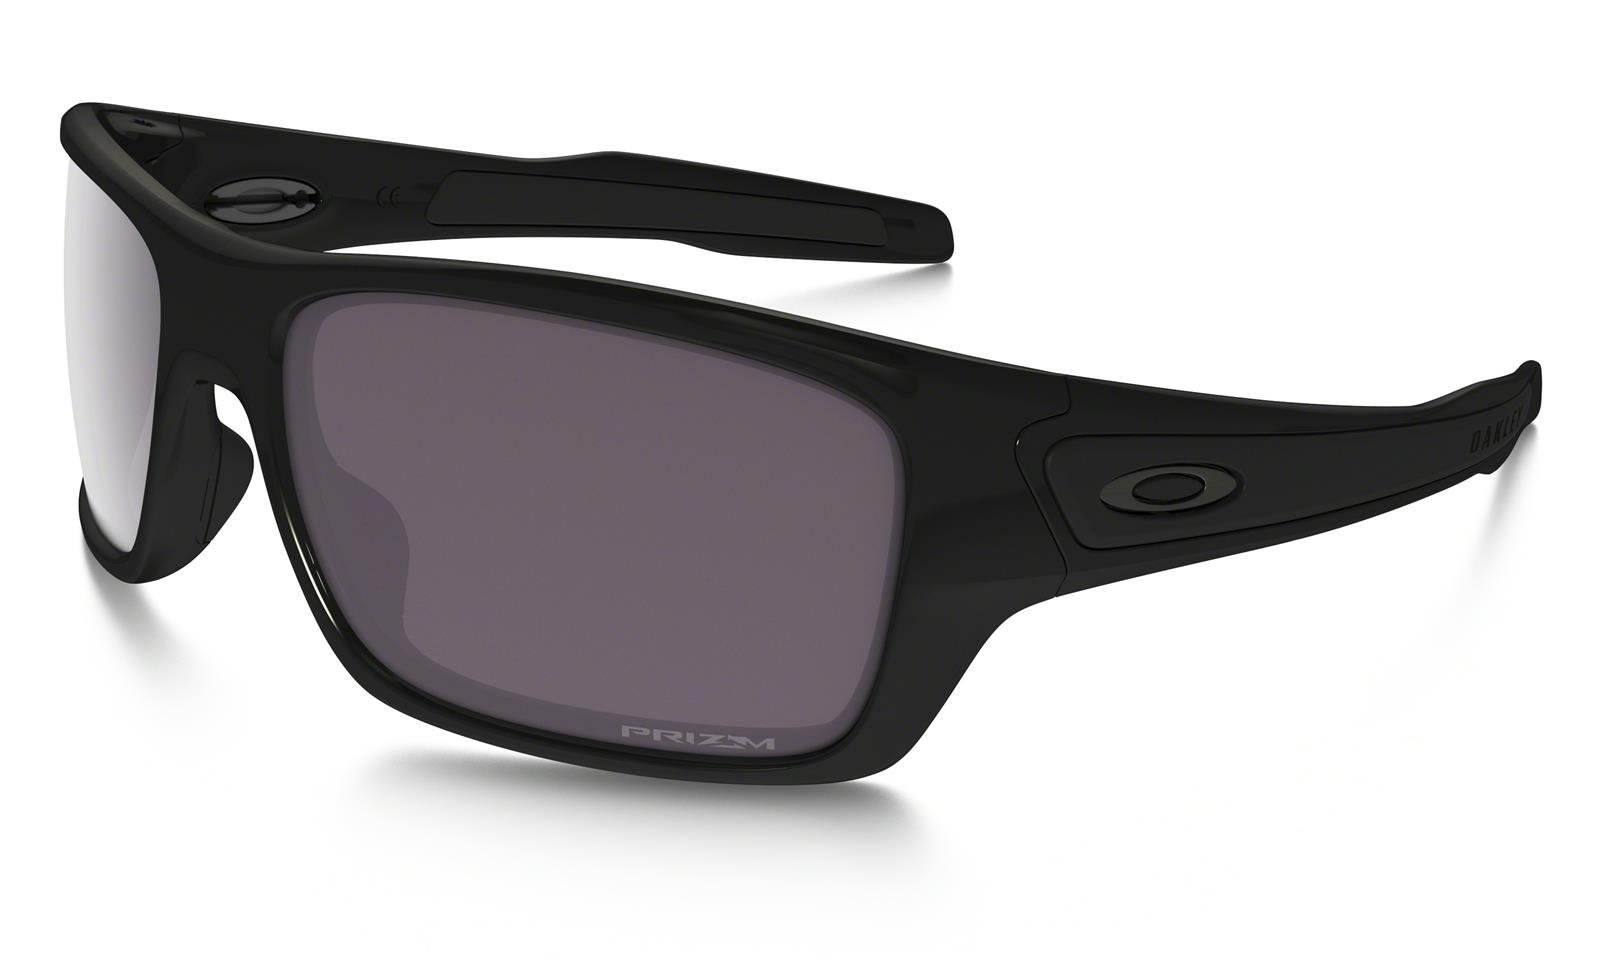 68cb7dd9b39 Oakley Turbine Prizm Sunglasses OO9263-06 - Free Shipping on Orders Over   99 at Summit Racing